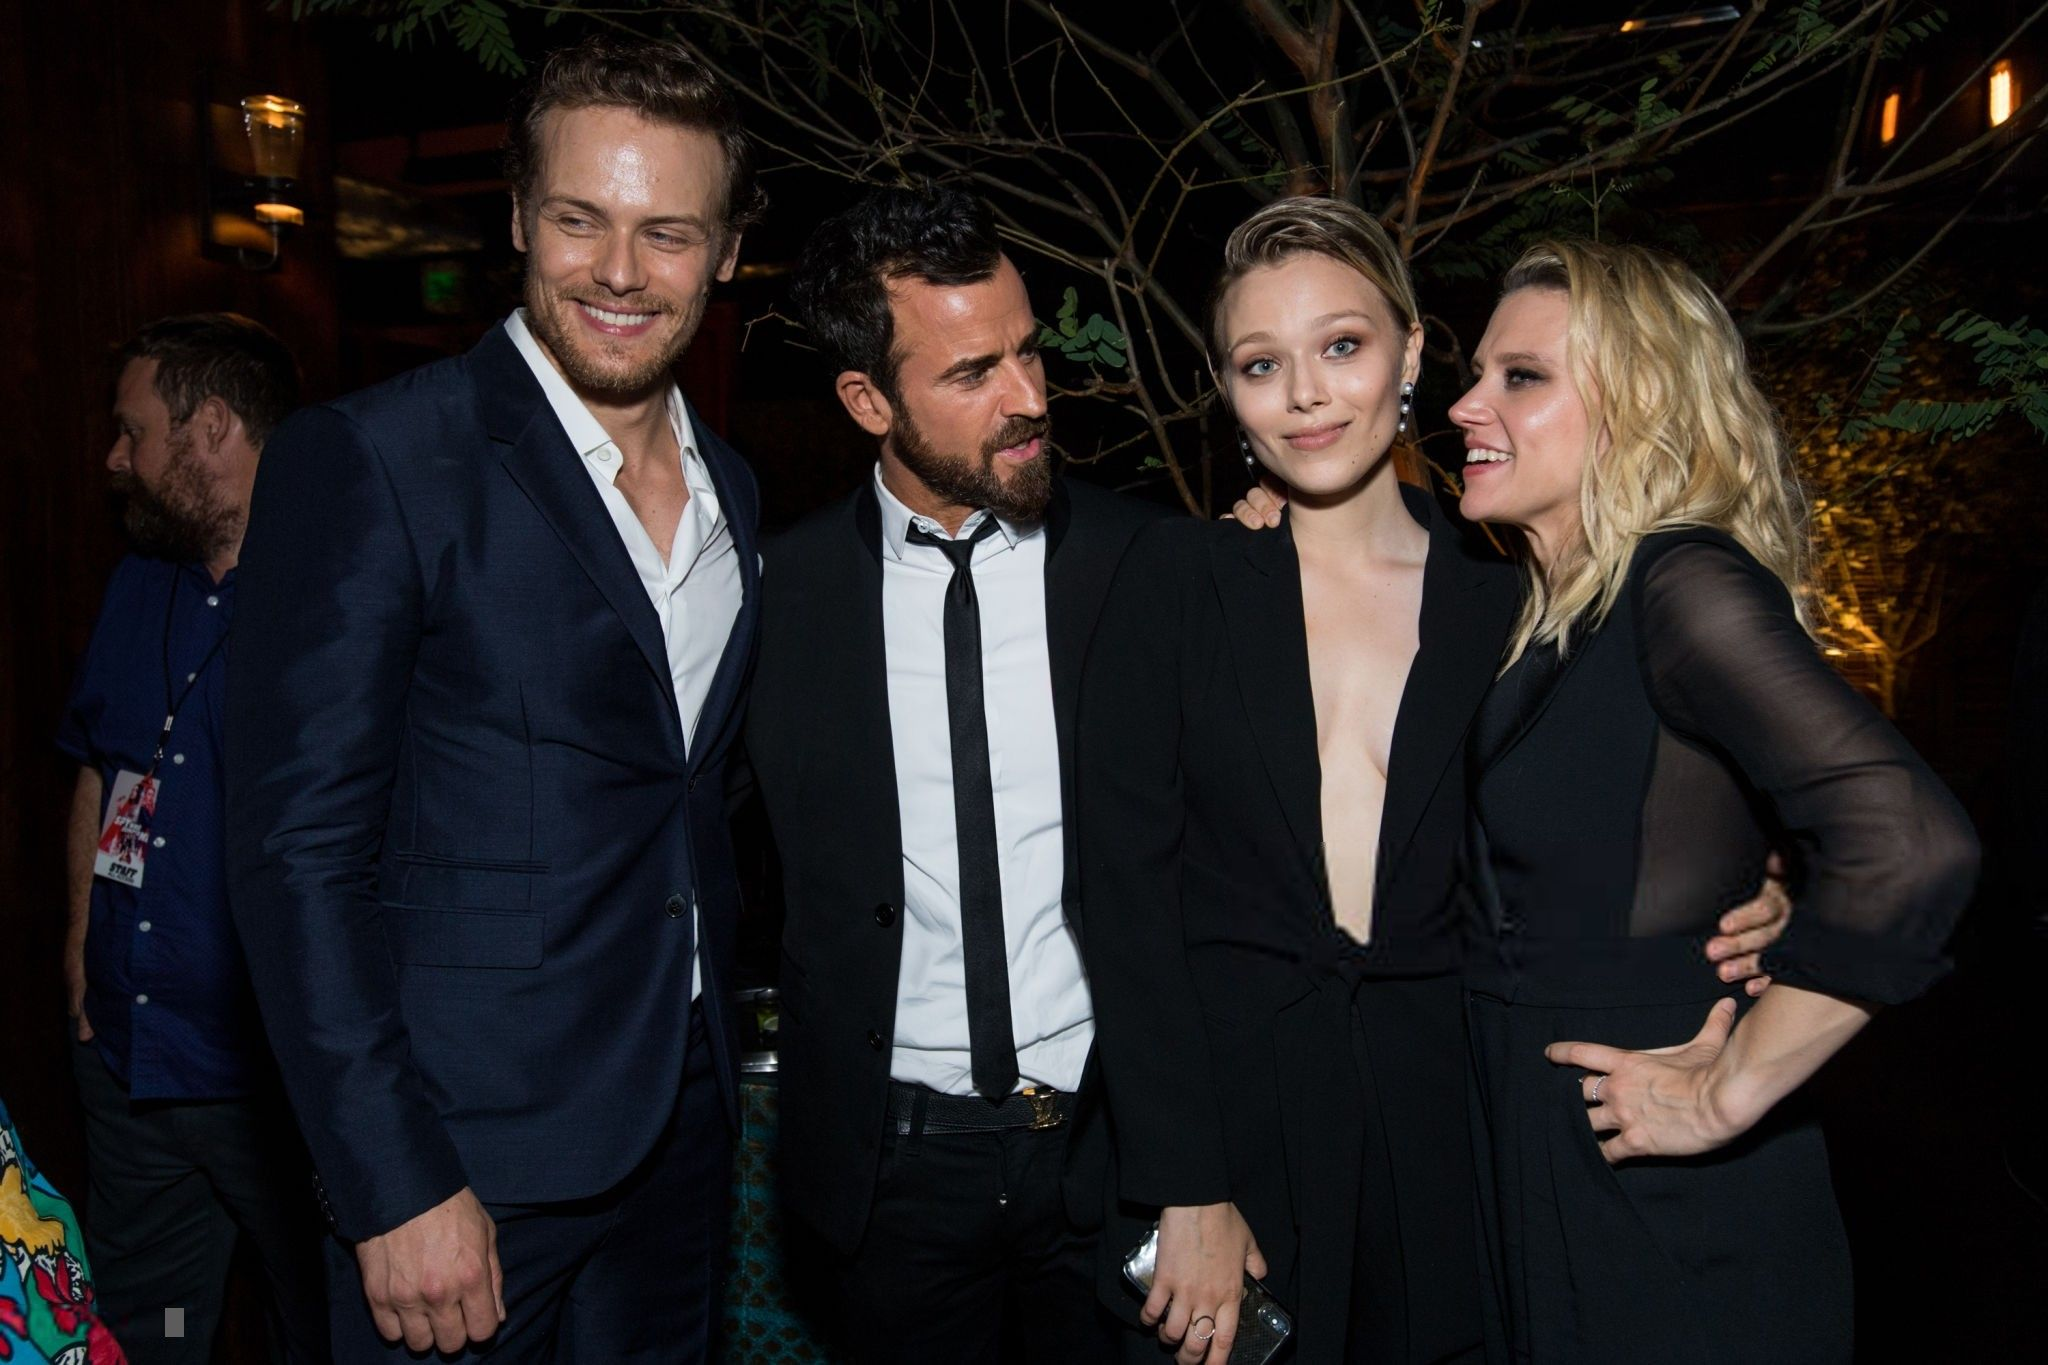 Here Are Newpics Of Sam Heughan At The After Party Of The Spy Who